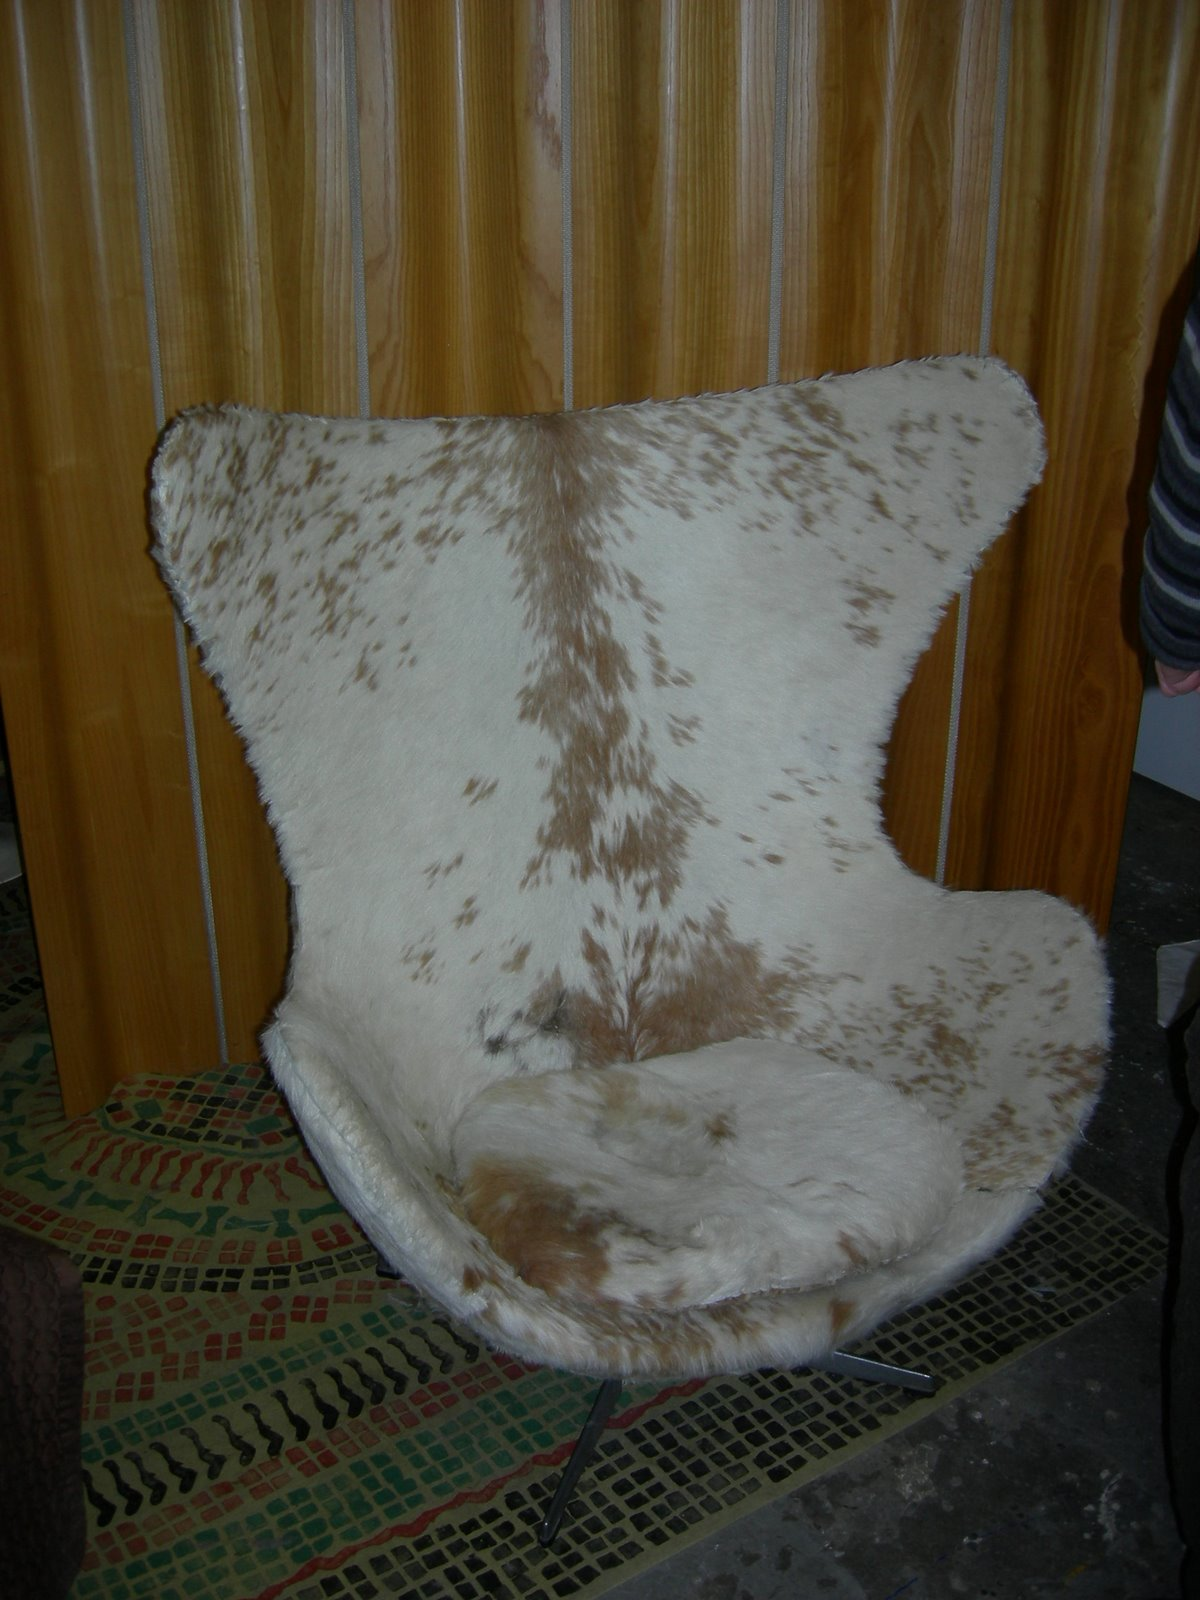 Reupholster Egg Chair My New Old Egg Chair Or Ultimate Diy Hip And Stingy